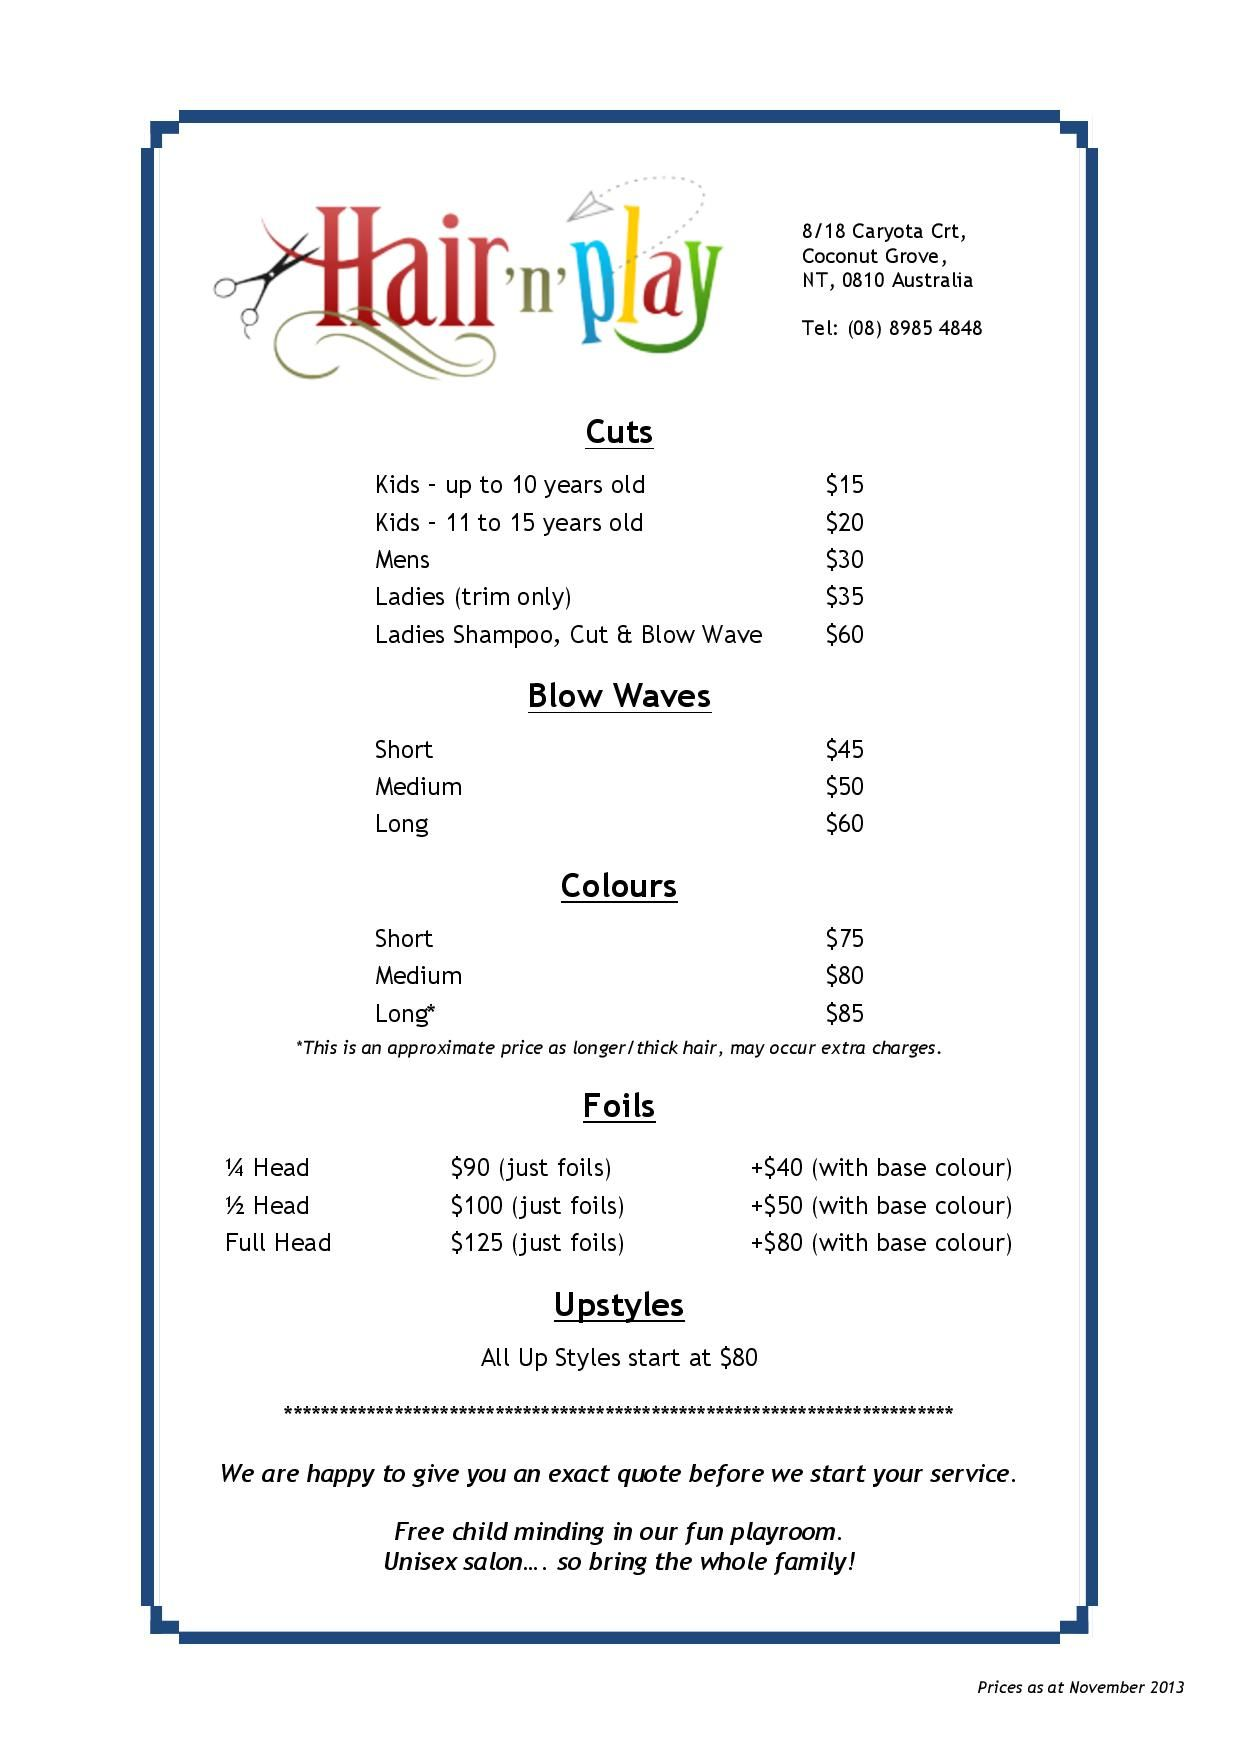 Fantastic 100 Free Resume Builder Huge 1099 Agreement Template Flat 120mm Fan Template 15 Year Old First Resume Youthful 185 Powerful Resume Verbs Gray18th Invitation Templates This Is Our Current Prices List For Hair Services. Please Contact ..